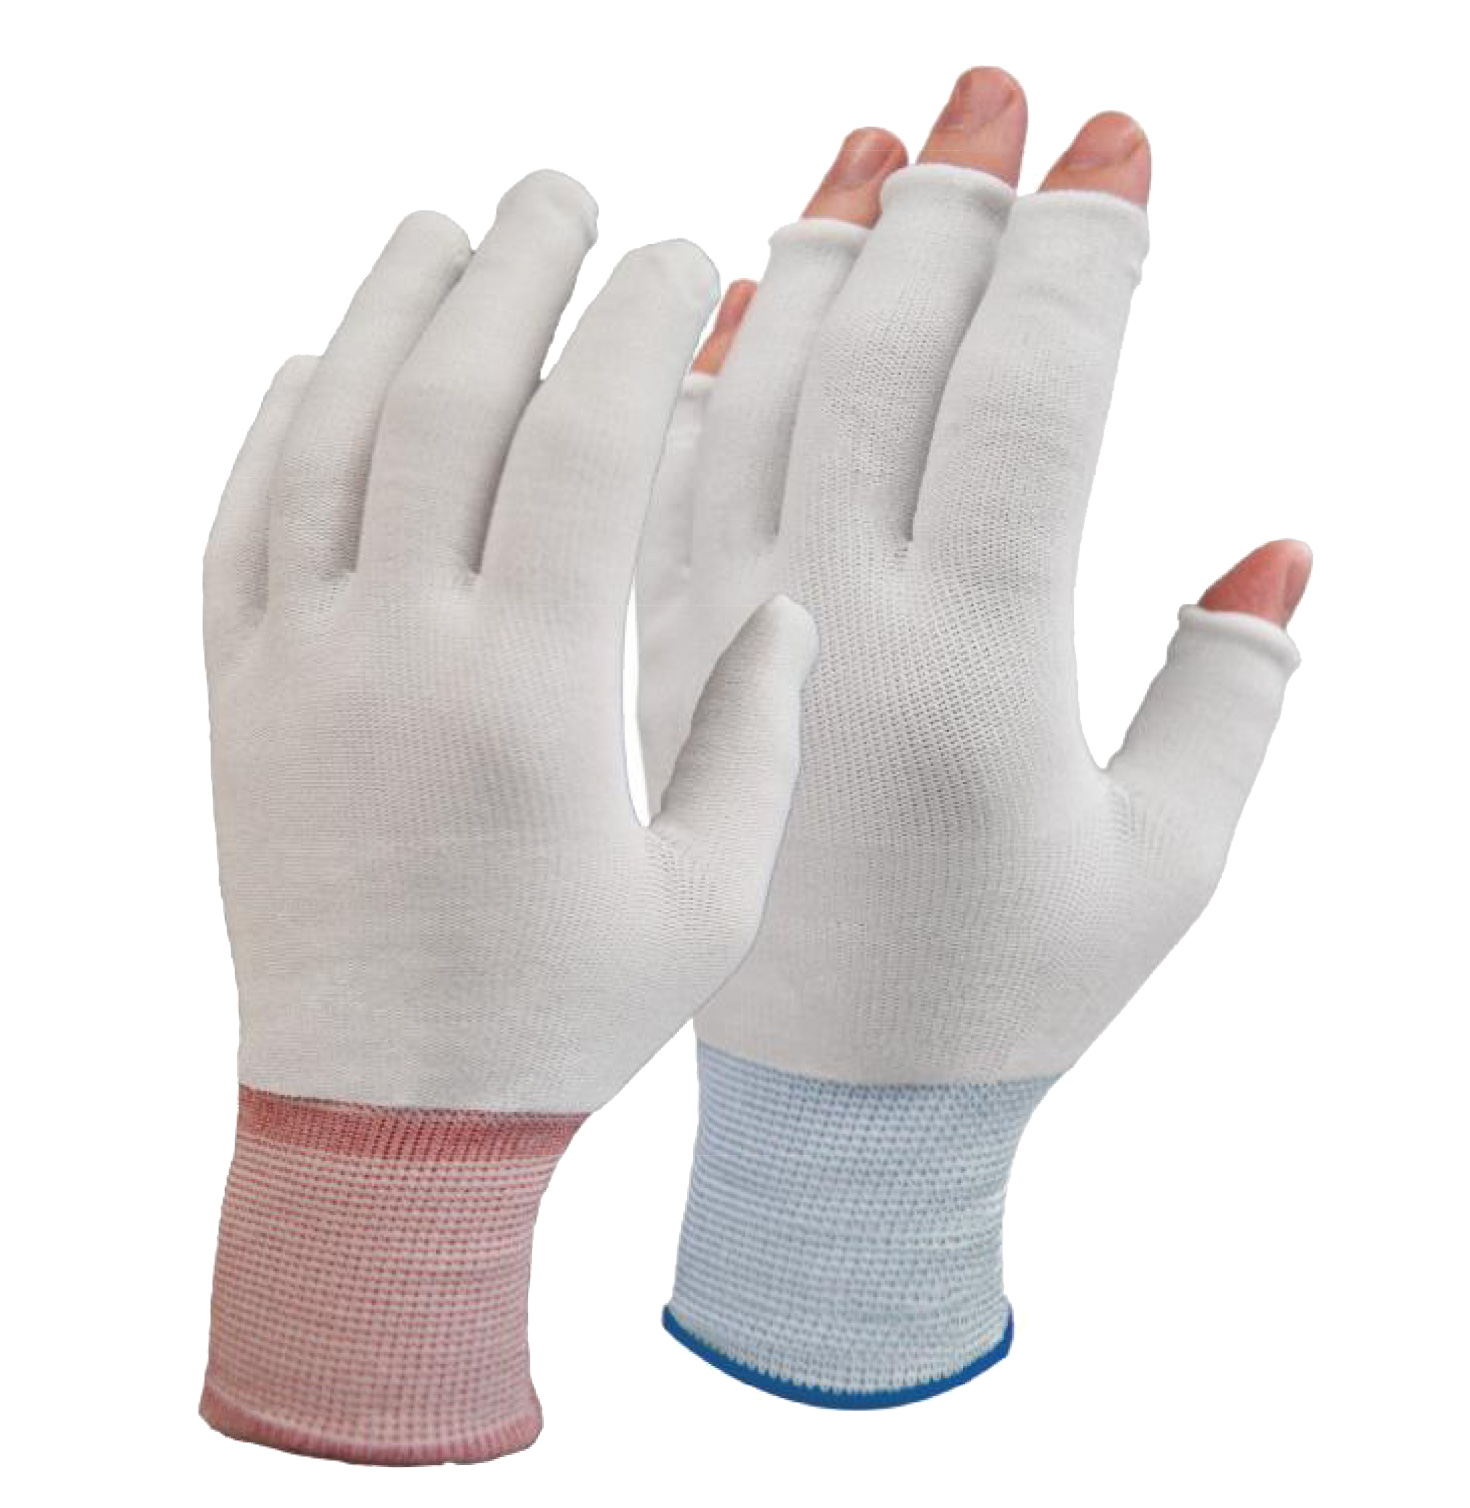 Glove liners open and cut resistant